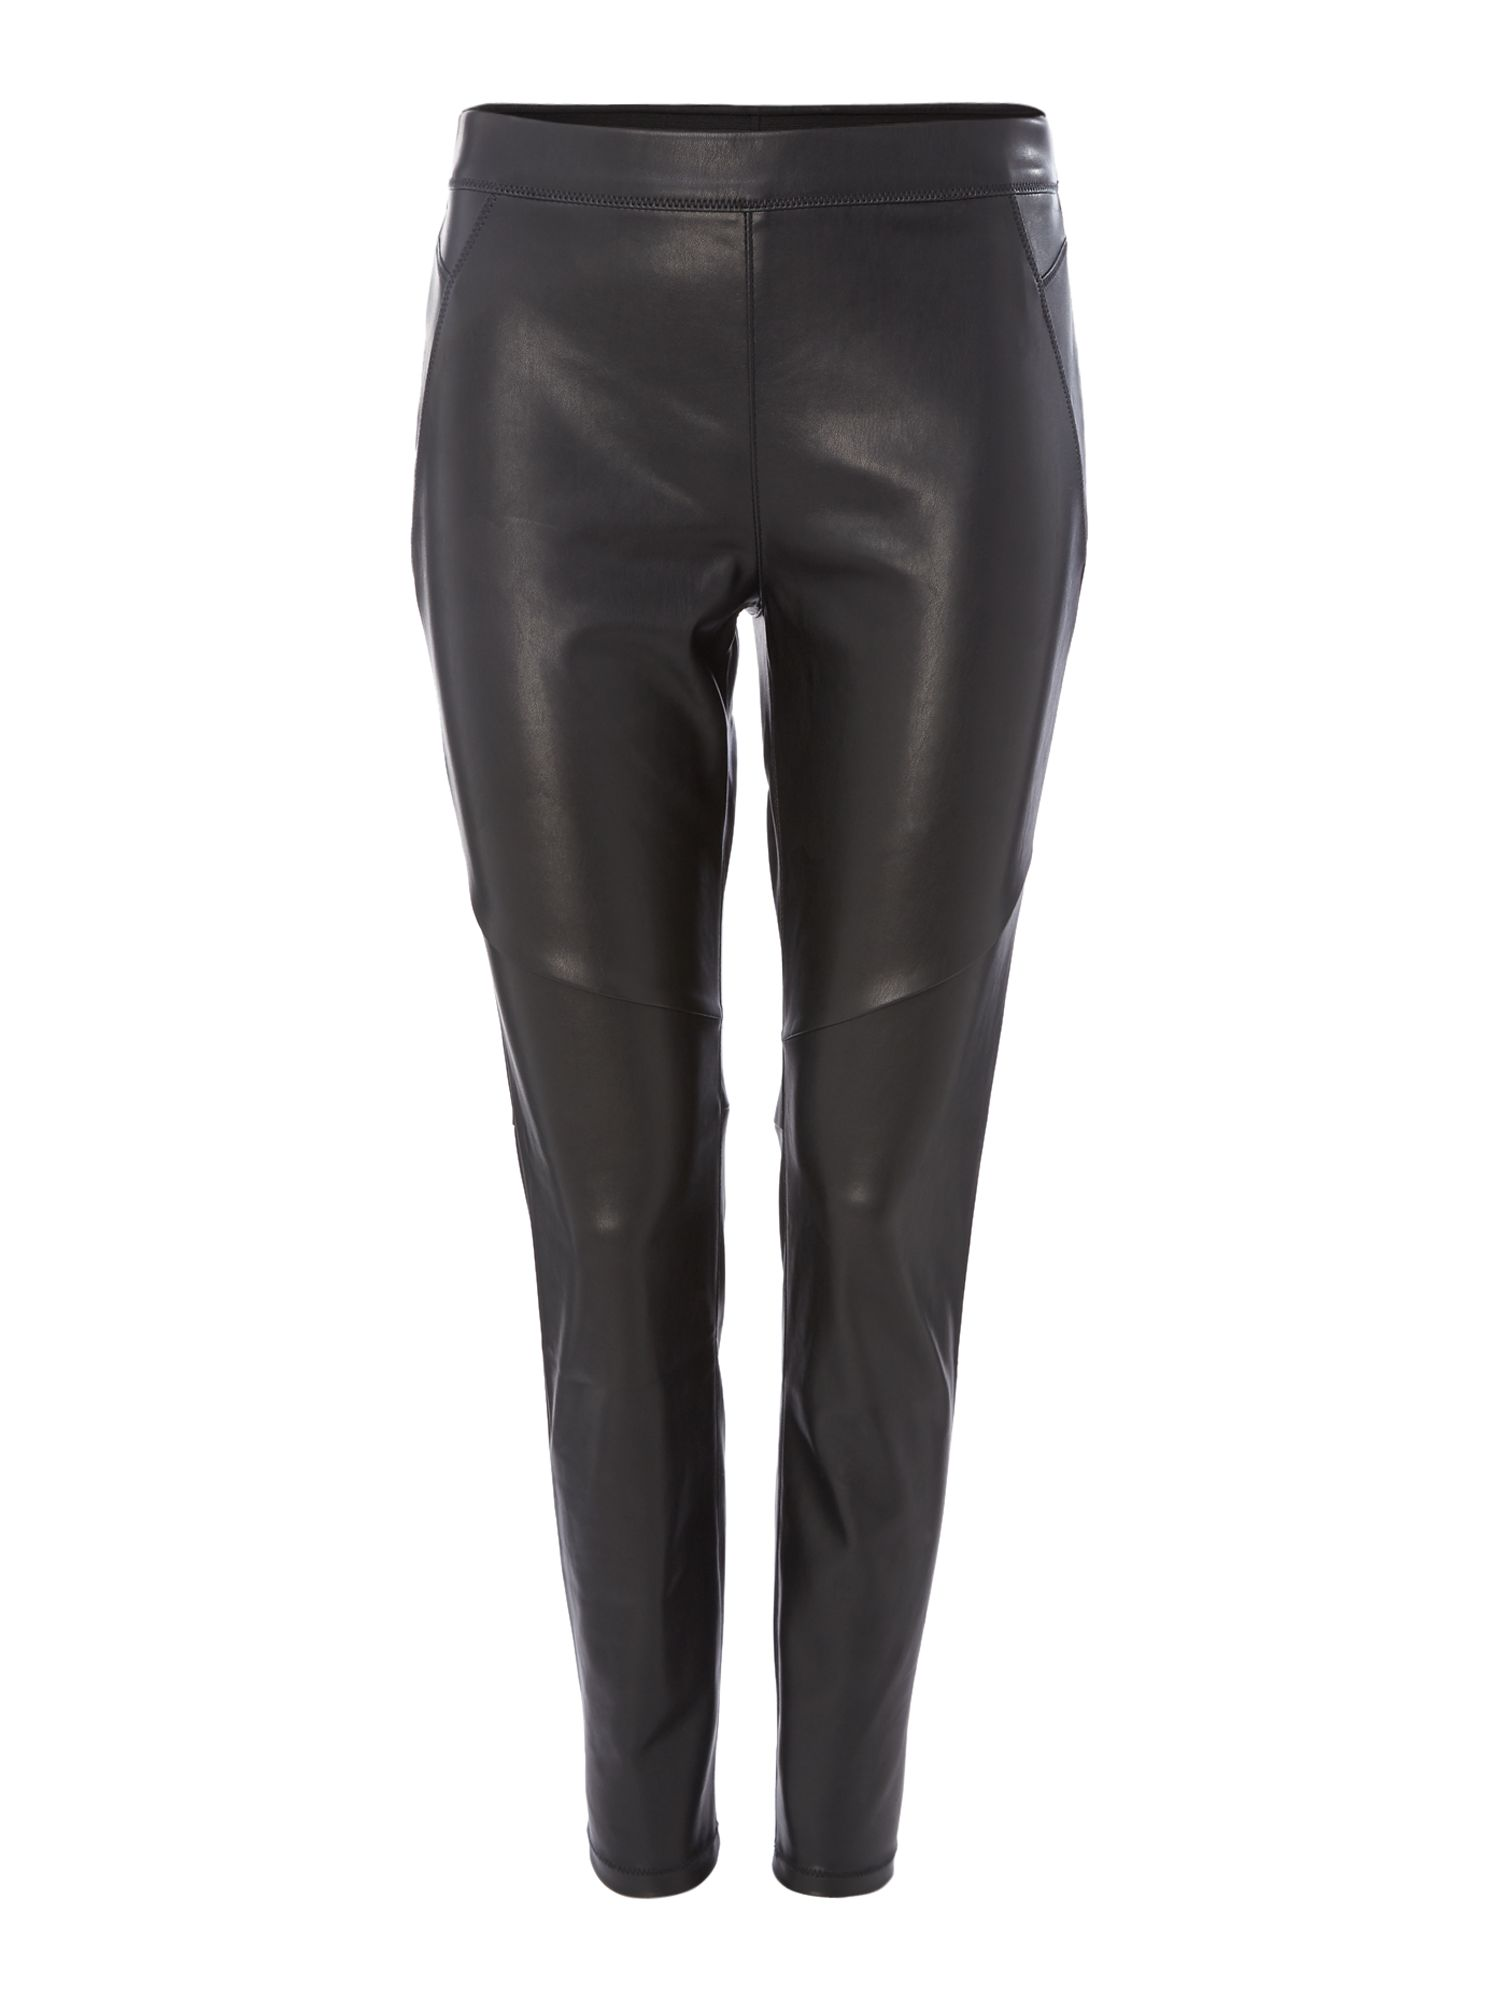 Free People Vegan Leather Look Leggings, Black